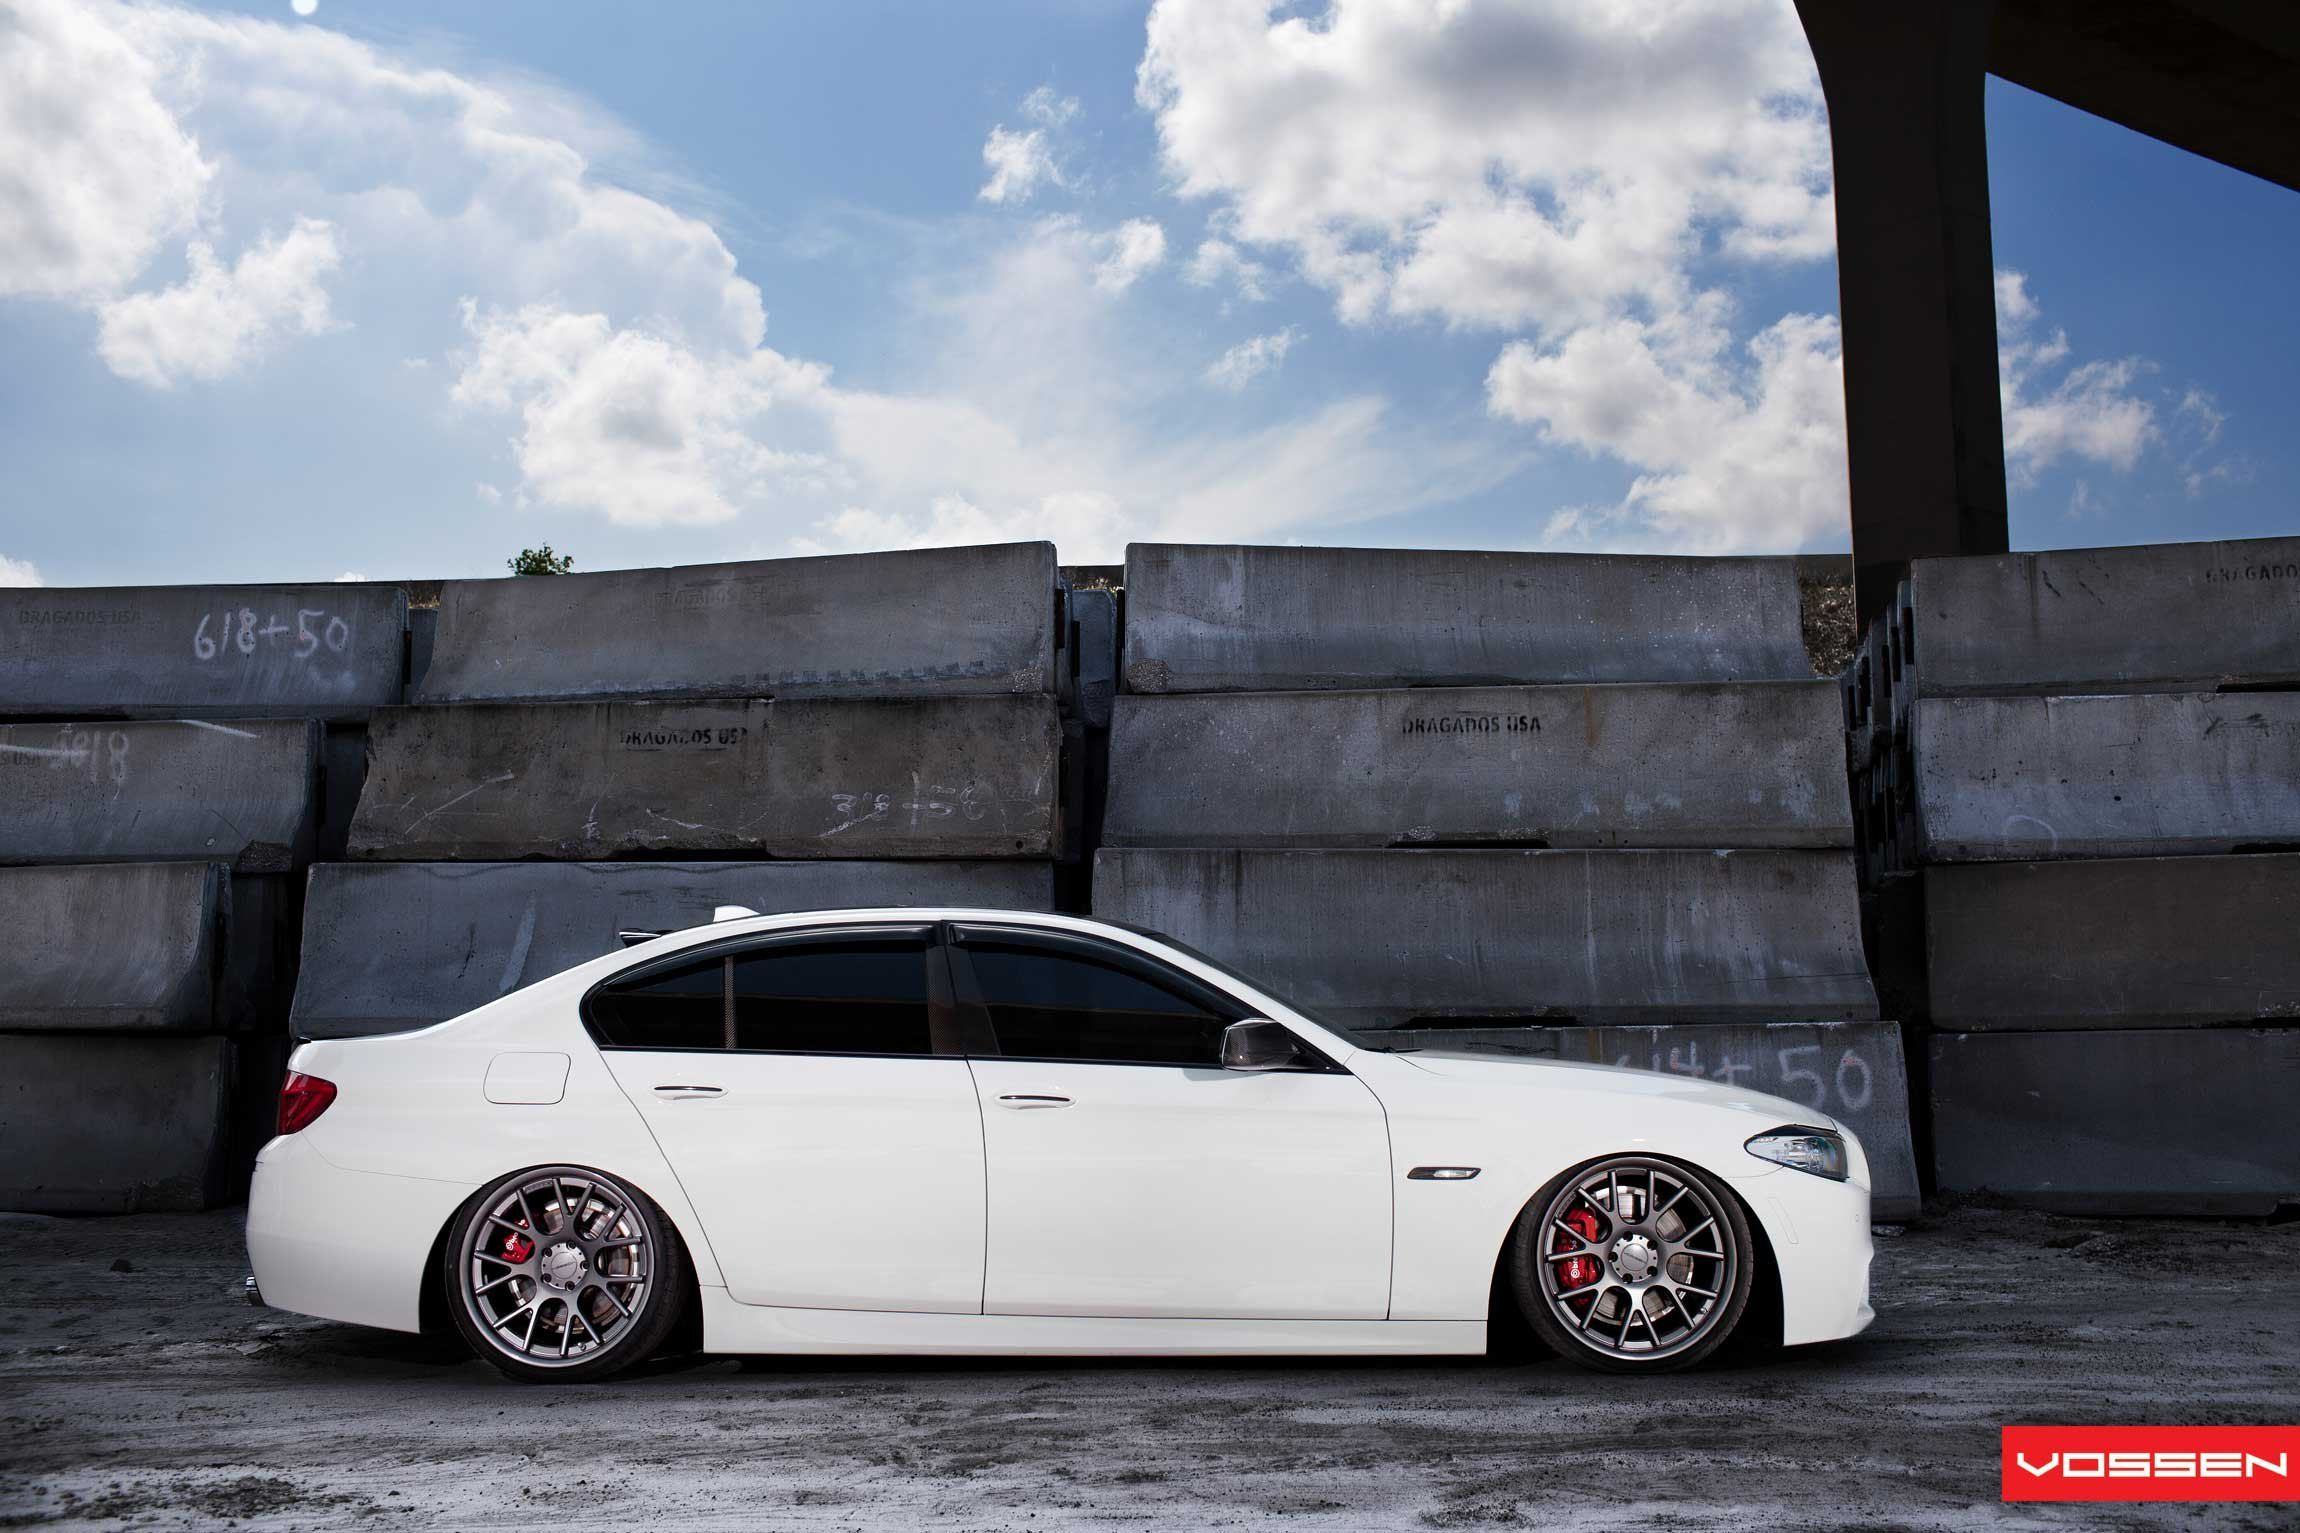 Lowered White Bmw 5 Series With Carbon Fiber Parts